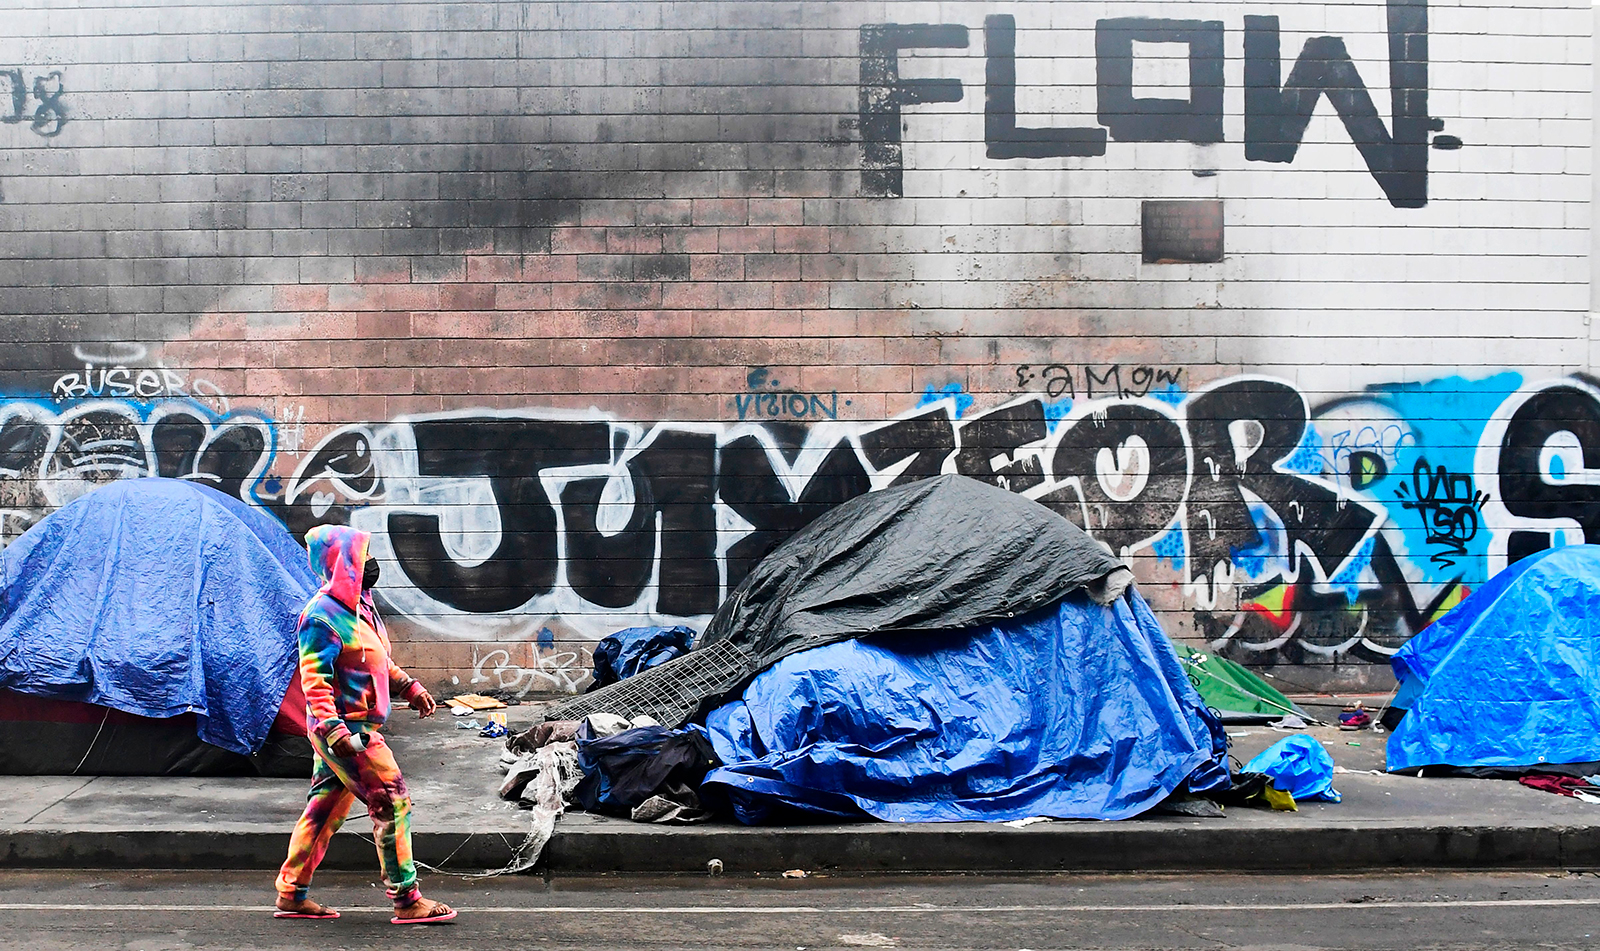 All homeless people on Los Angeles' Skid Row must be offered housing by the fall, judge orders